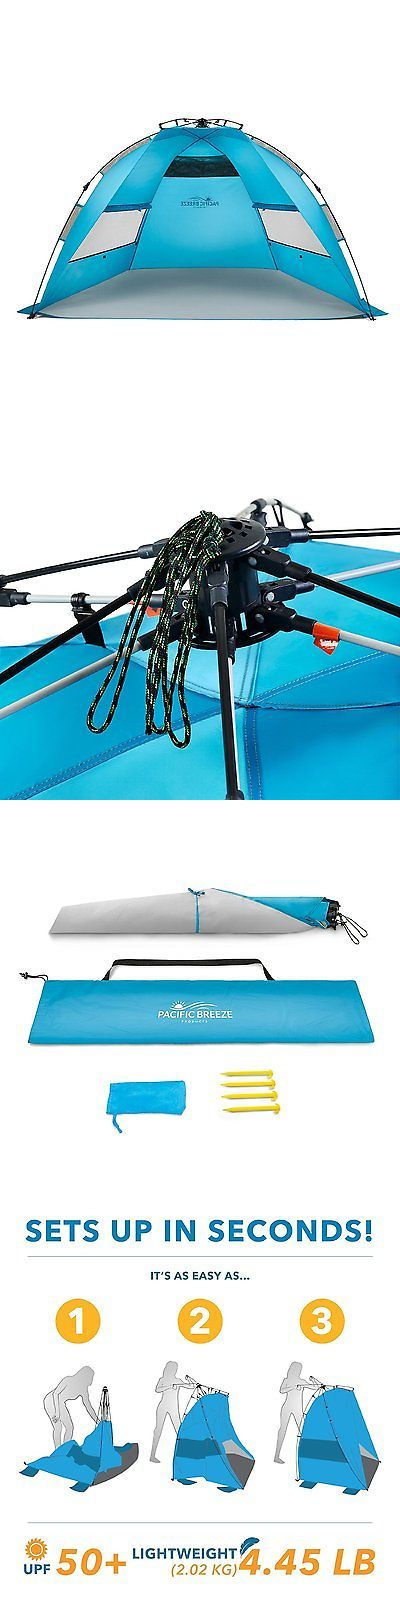 Tents 179010: Pacific Breeze Easyup Beach Tent Outdoor Canopy Sun Shelter Pop Up Blue - Refurb -> BUY IT NOW ONLY: $54.99 on eBay!